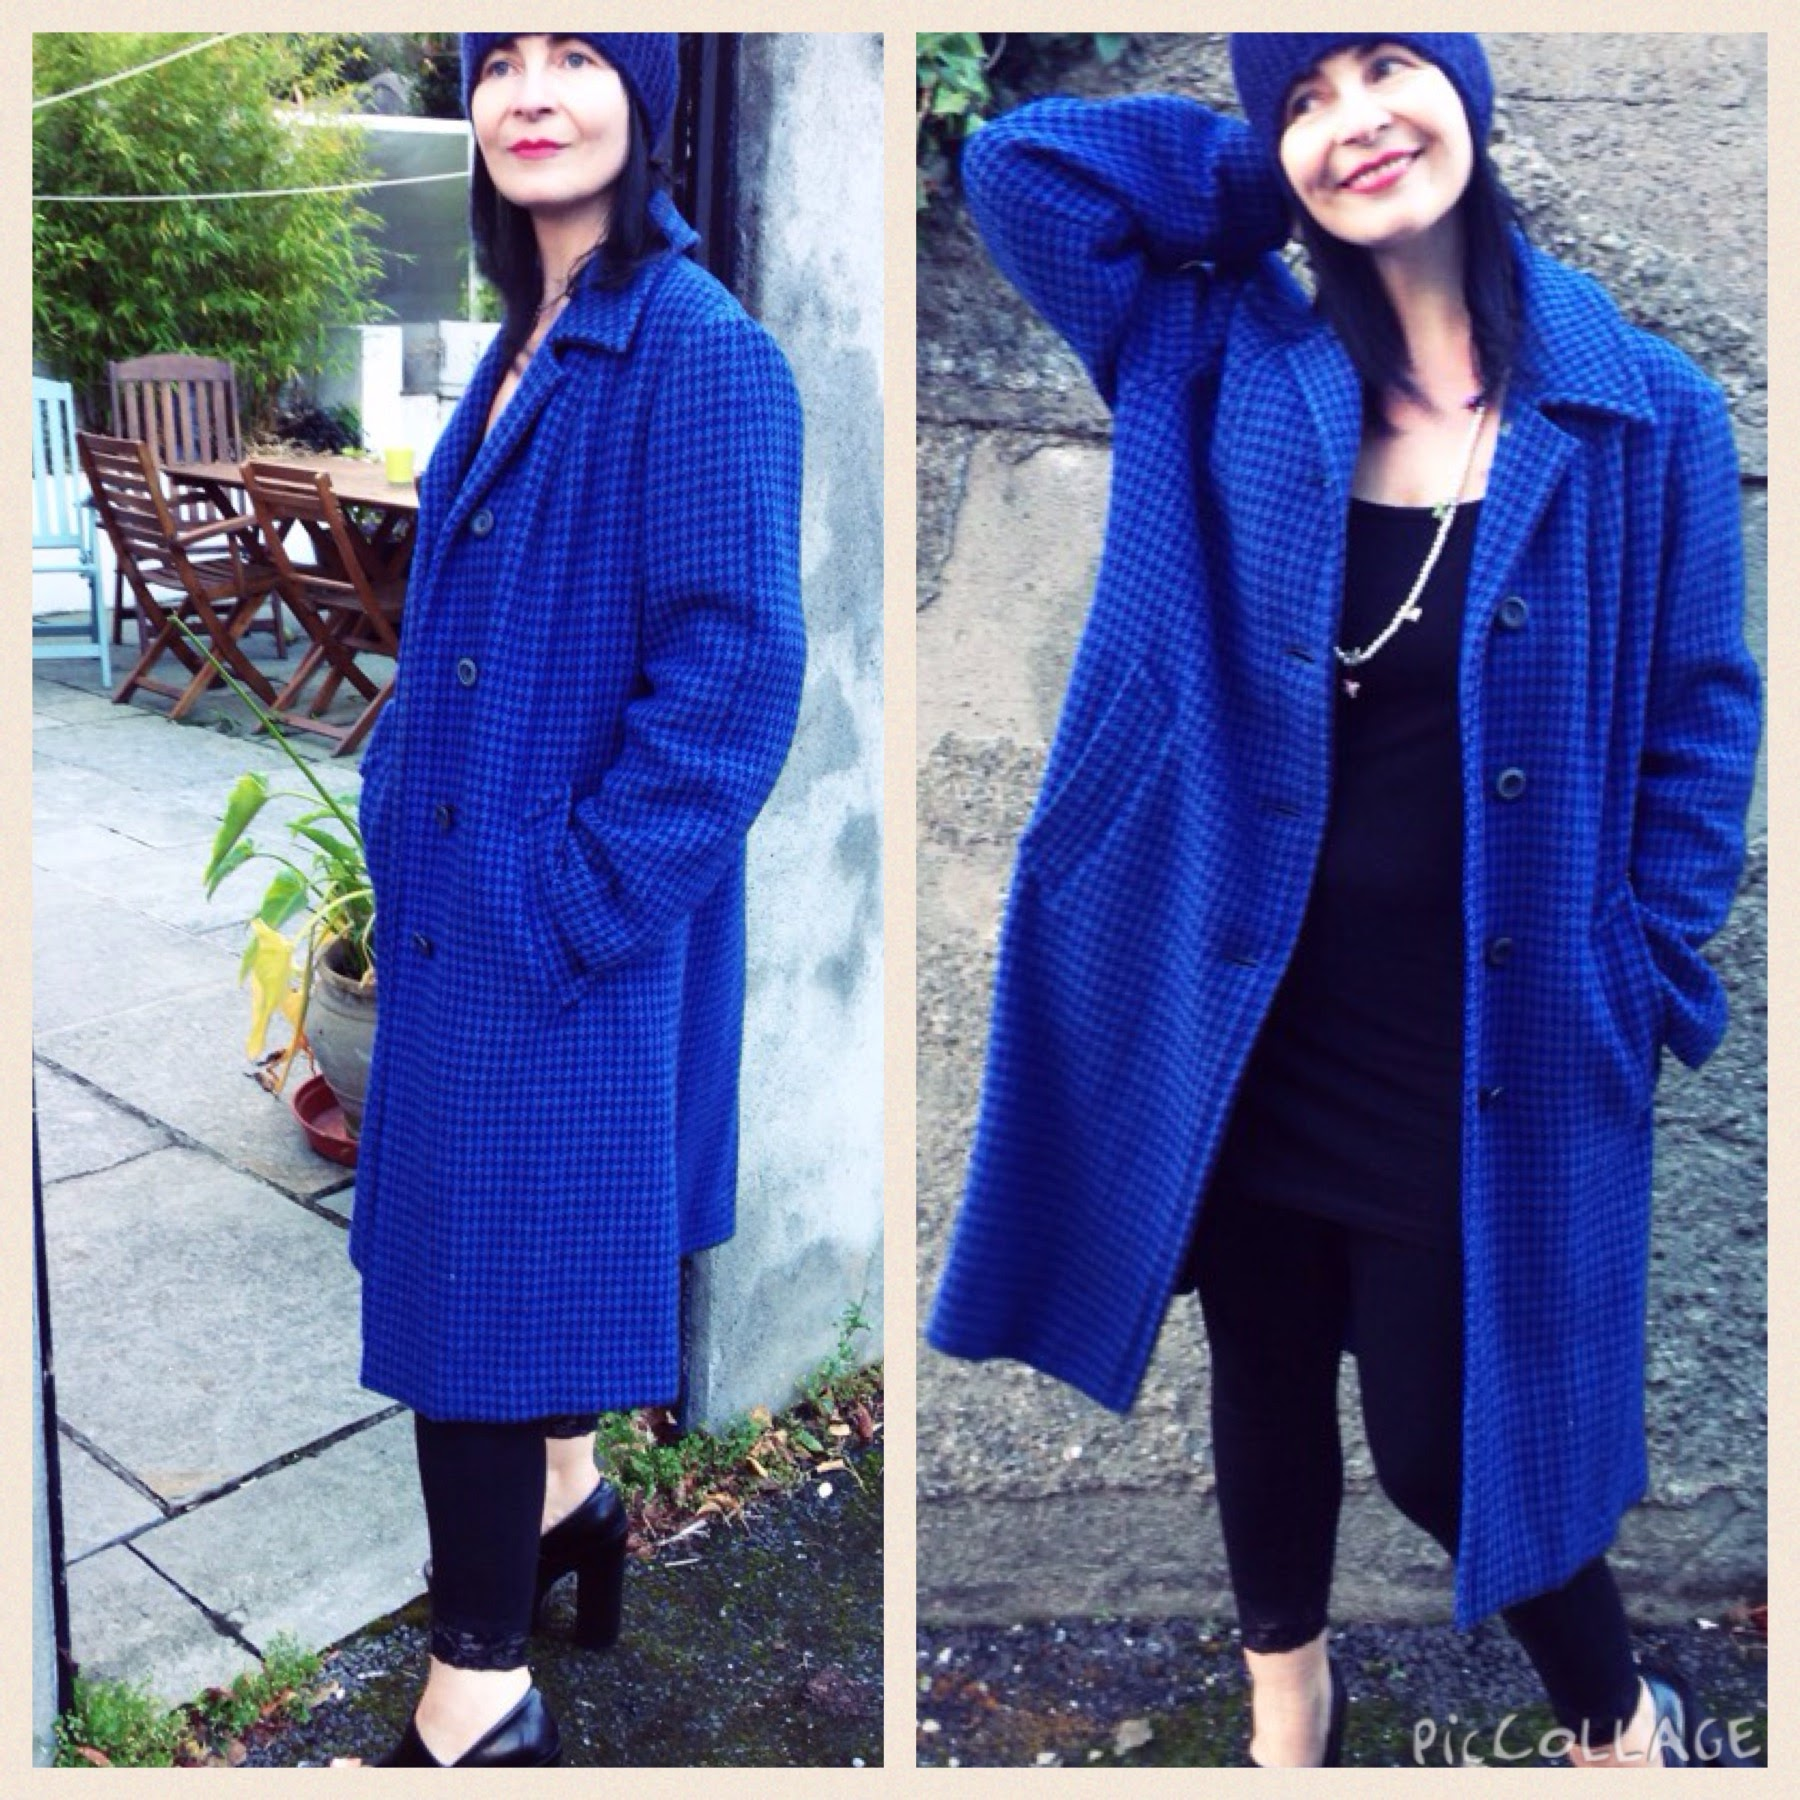 """Vintage """"Harris Tweed"""" overcoat in Blue/Black small check. Really cool coat. Love the tailoring in this charity shop find."""